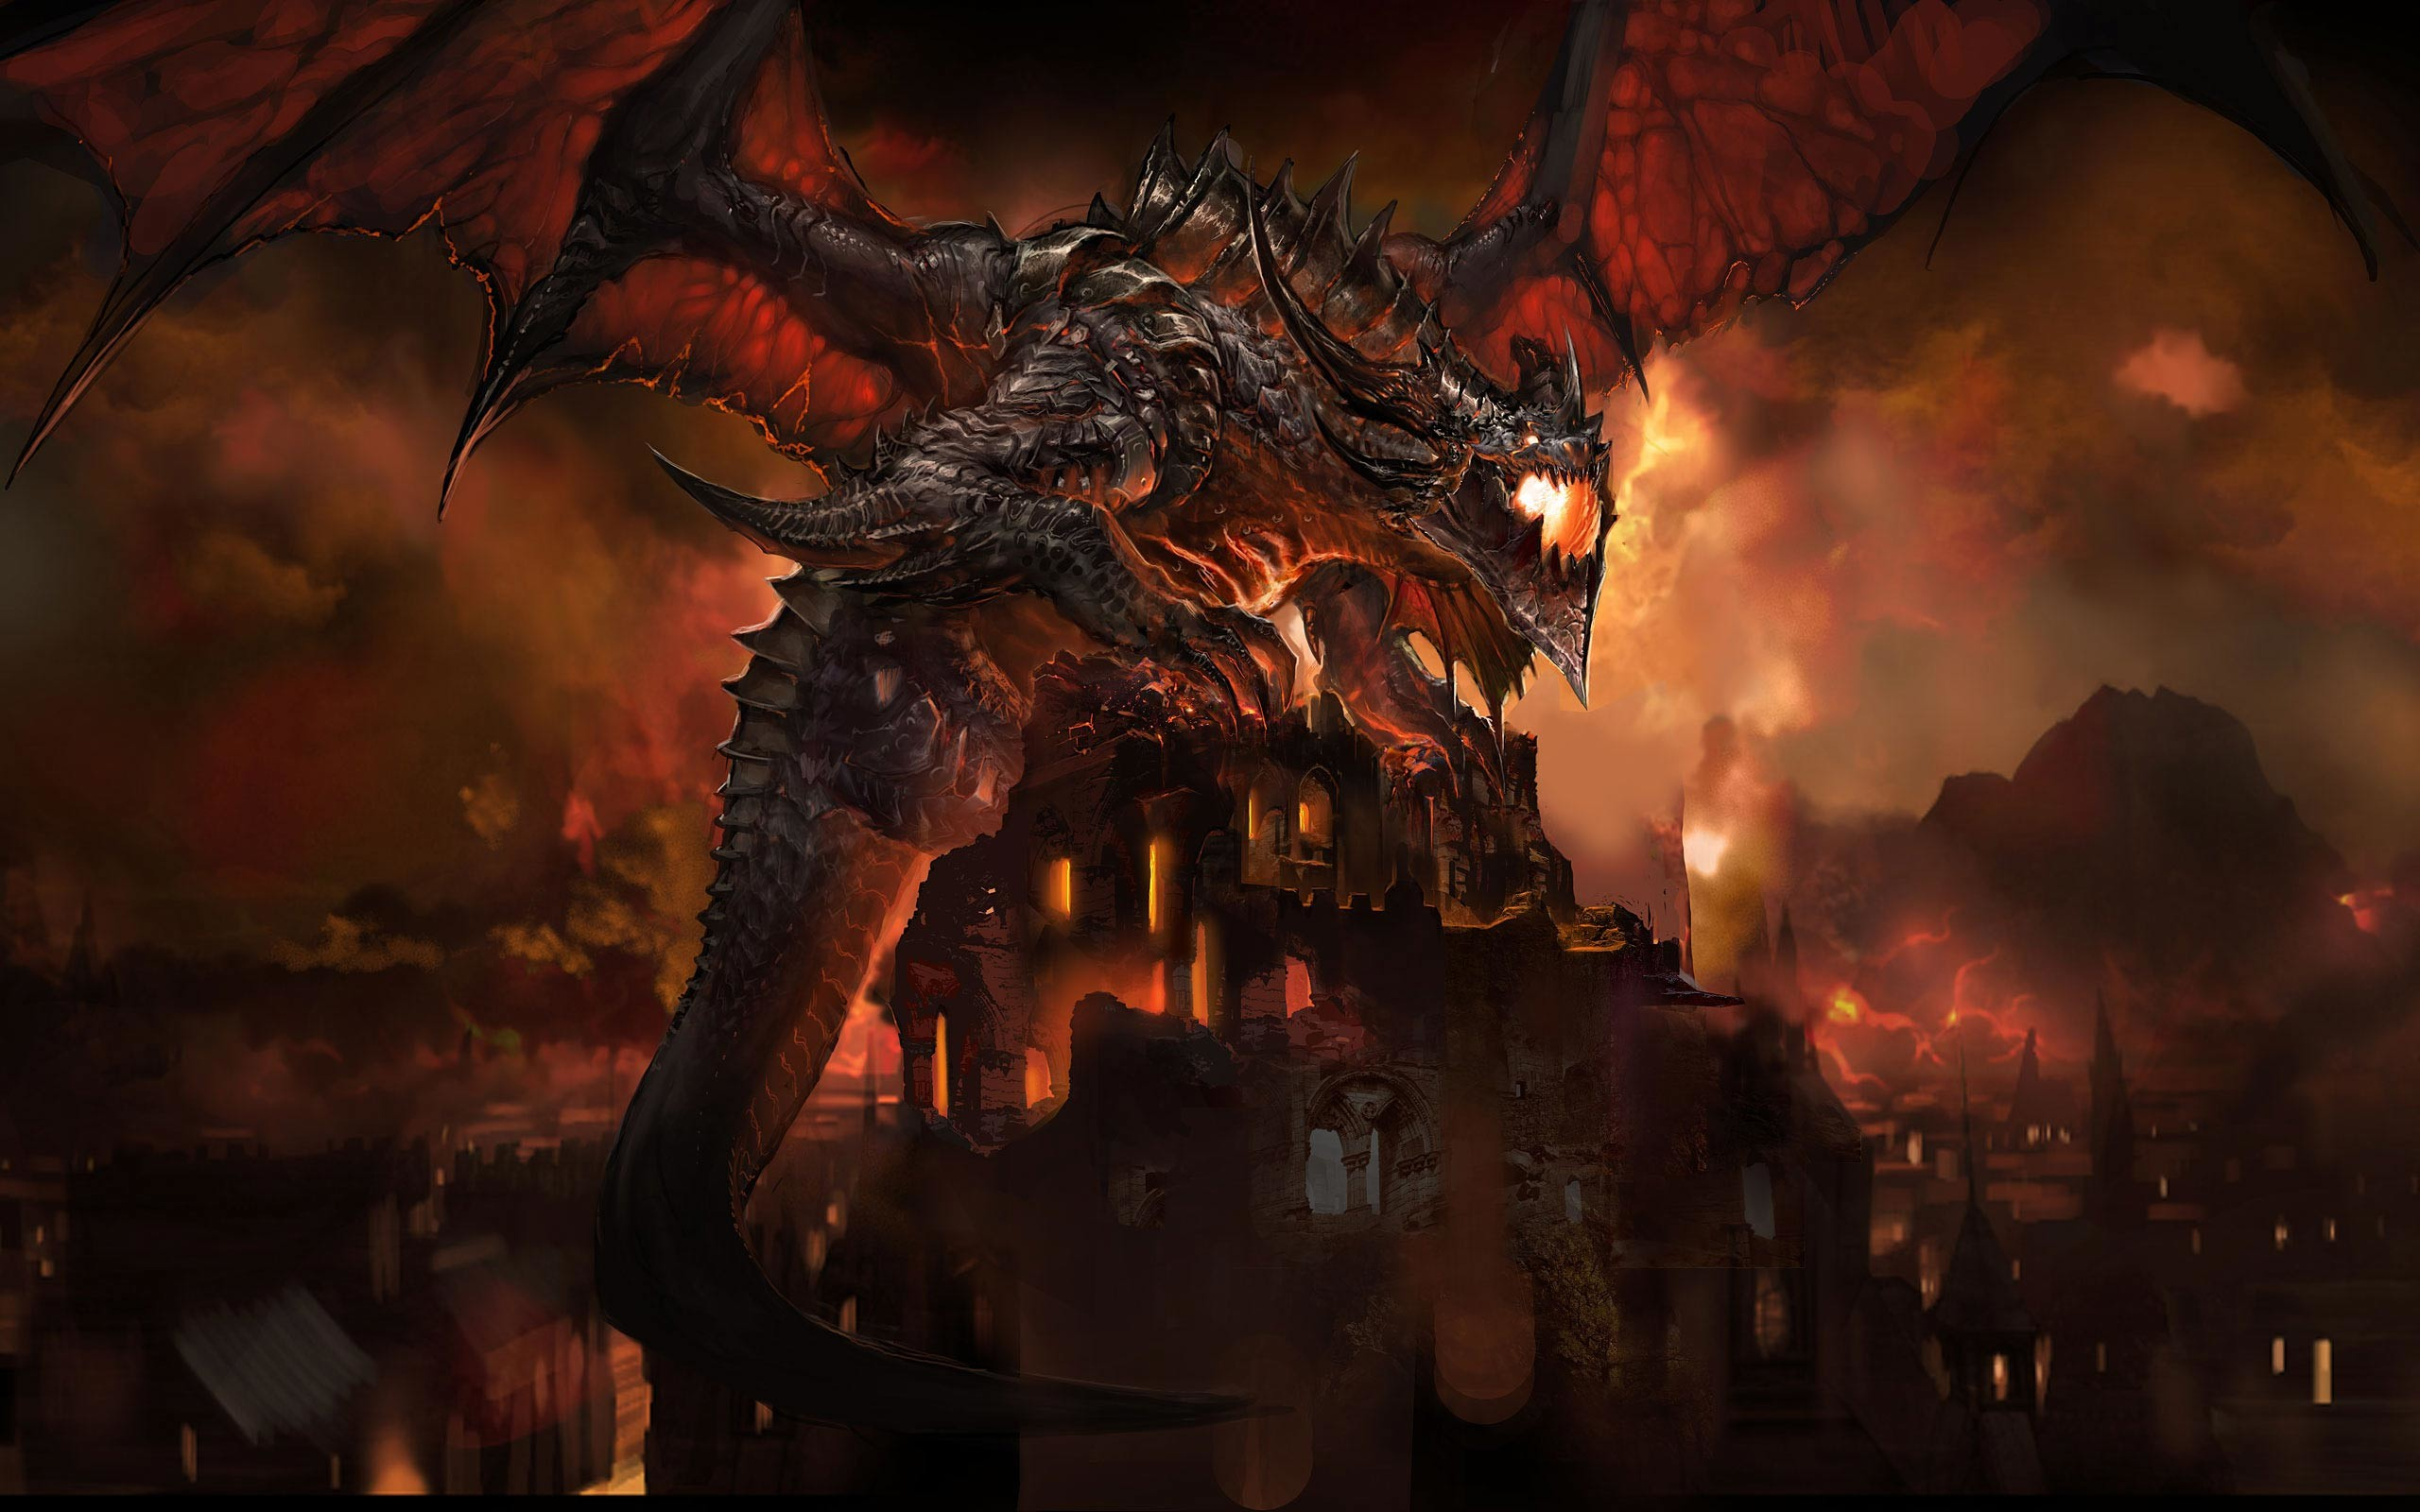 Video Game World Of Warcraft Dragon Sky Fire Deathwing Wallpaper